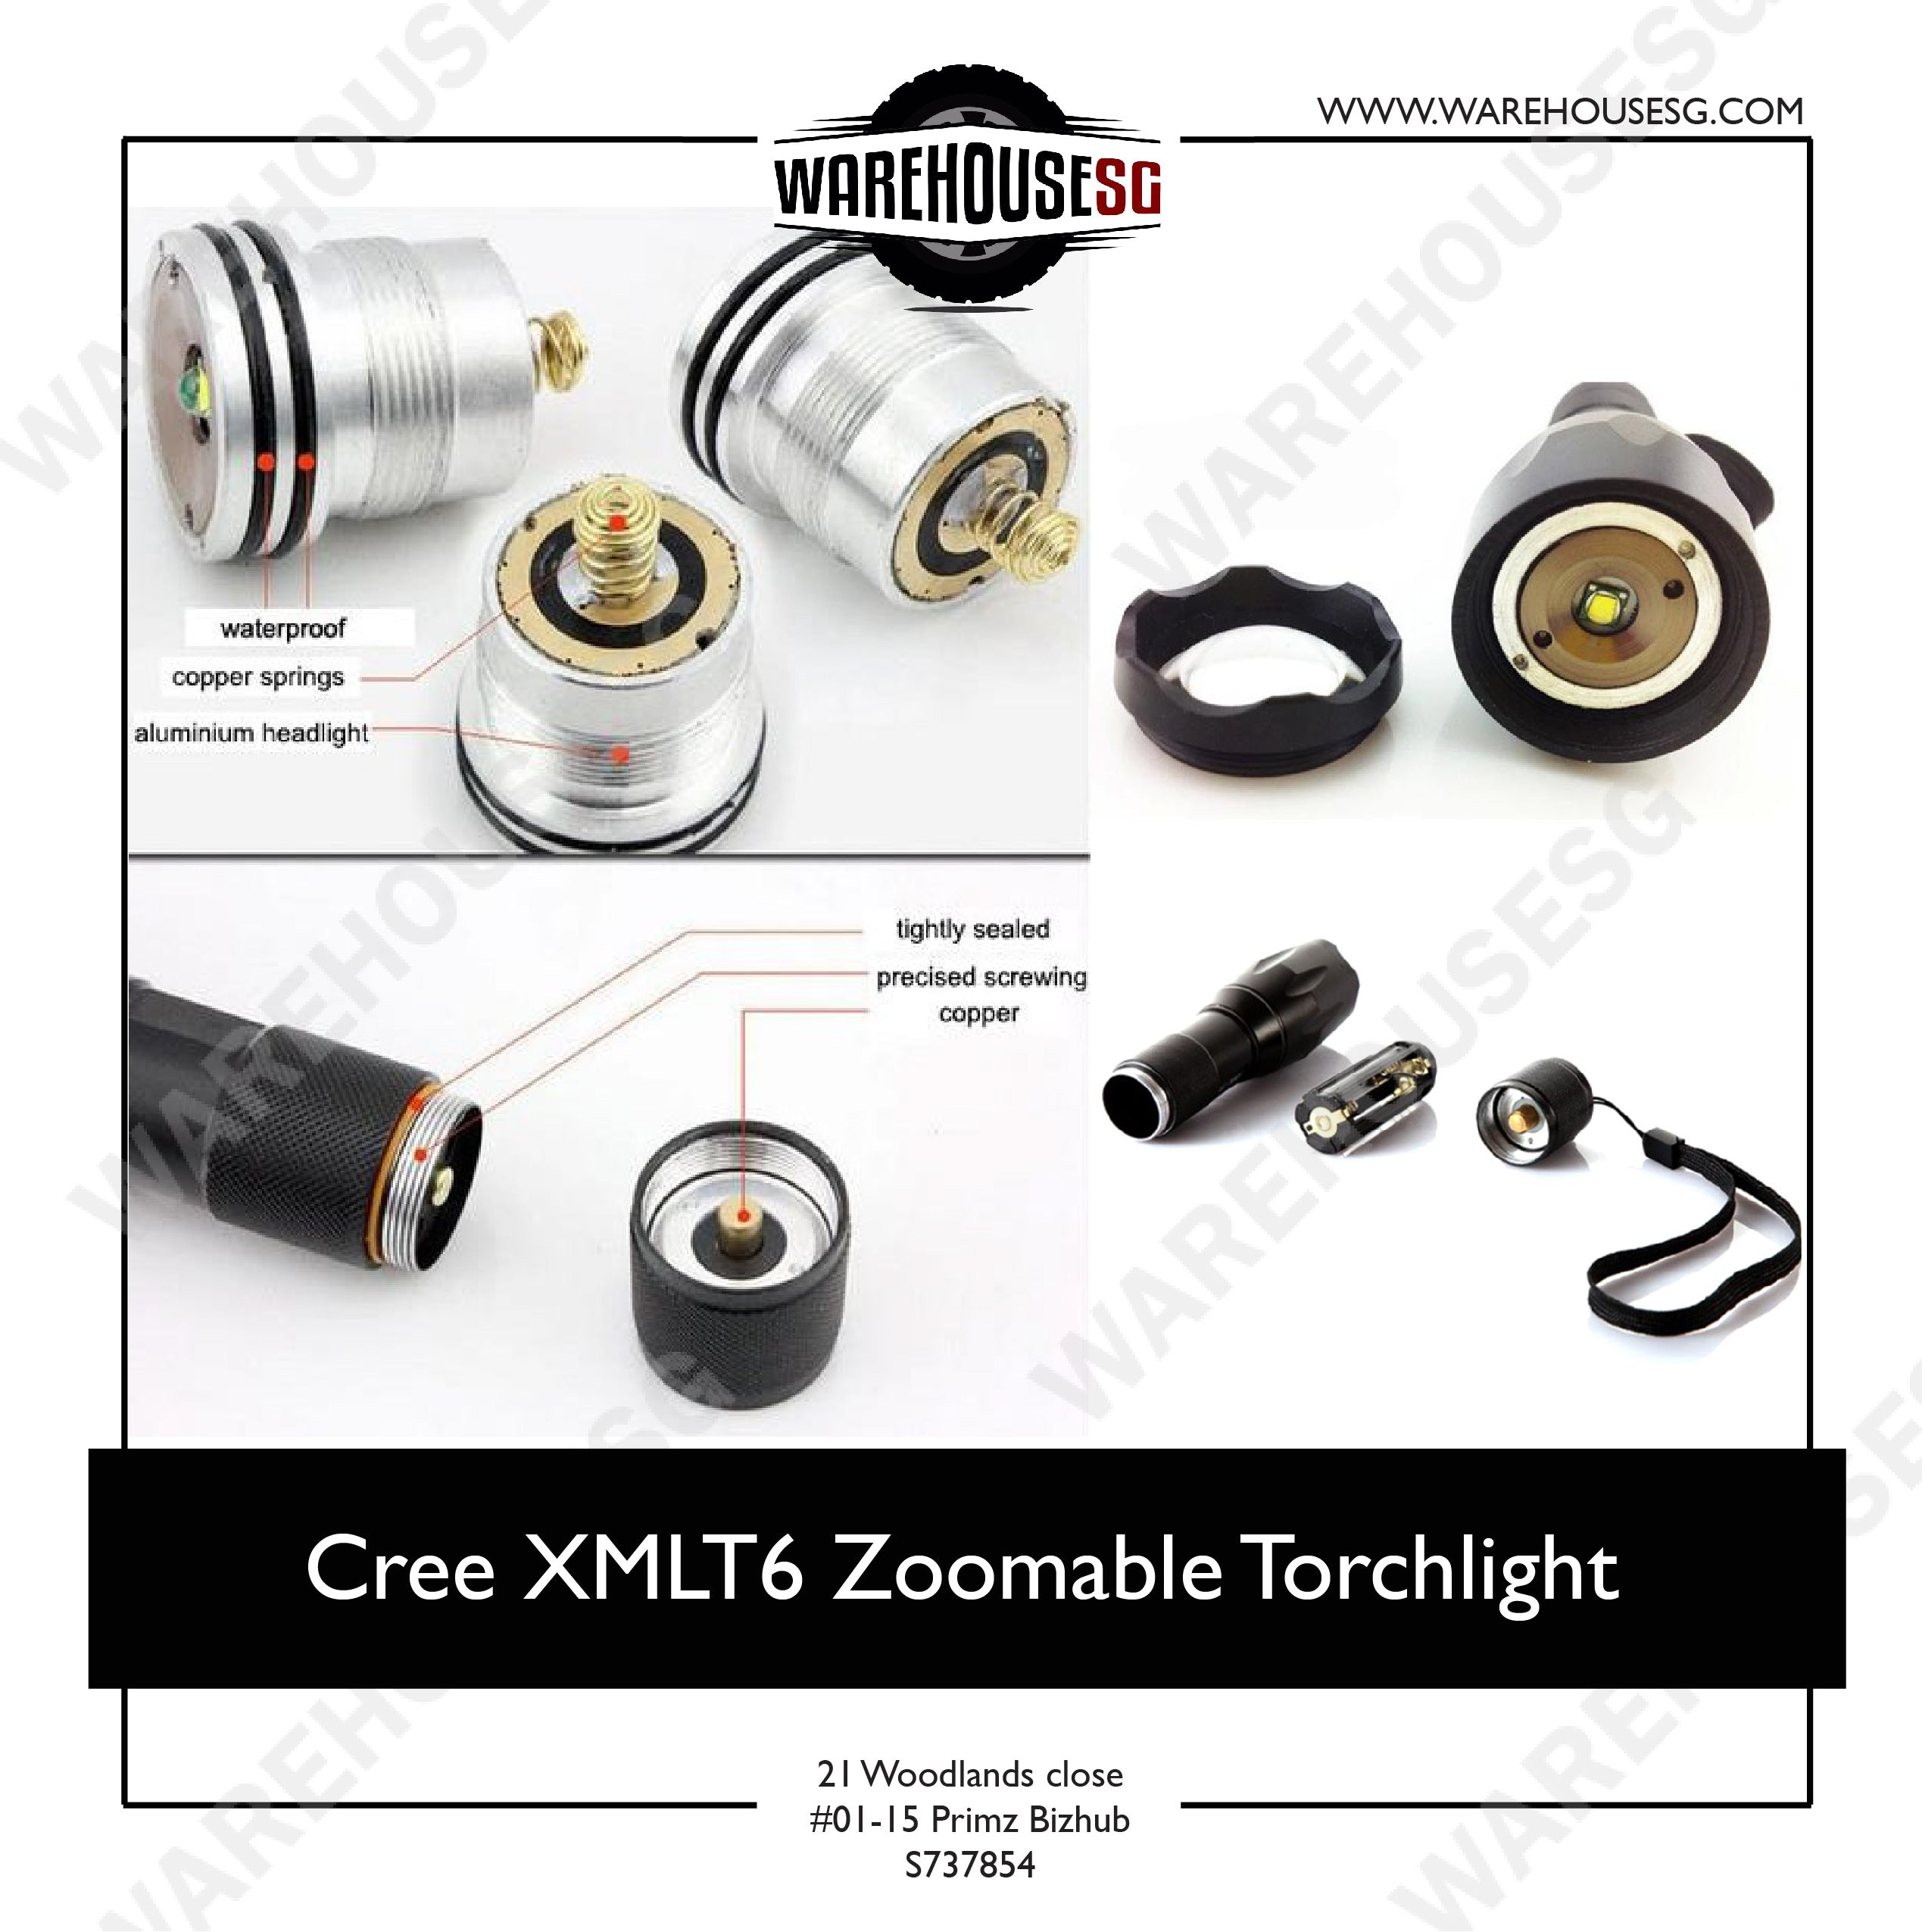 Cree XMLT6 Zoomable Torchlight